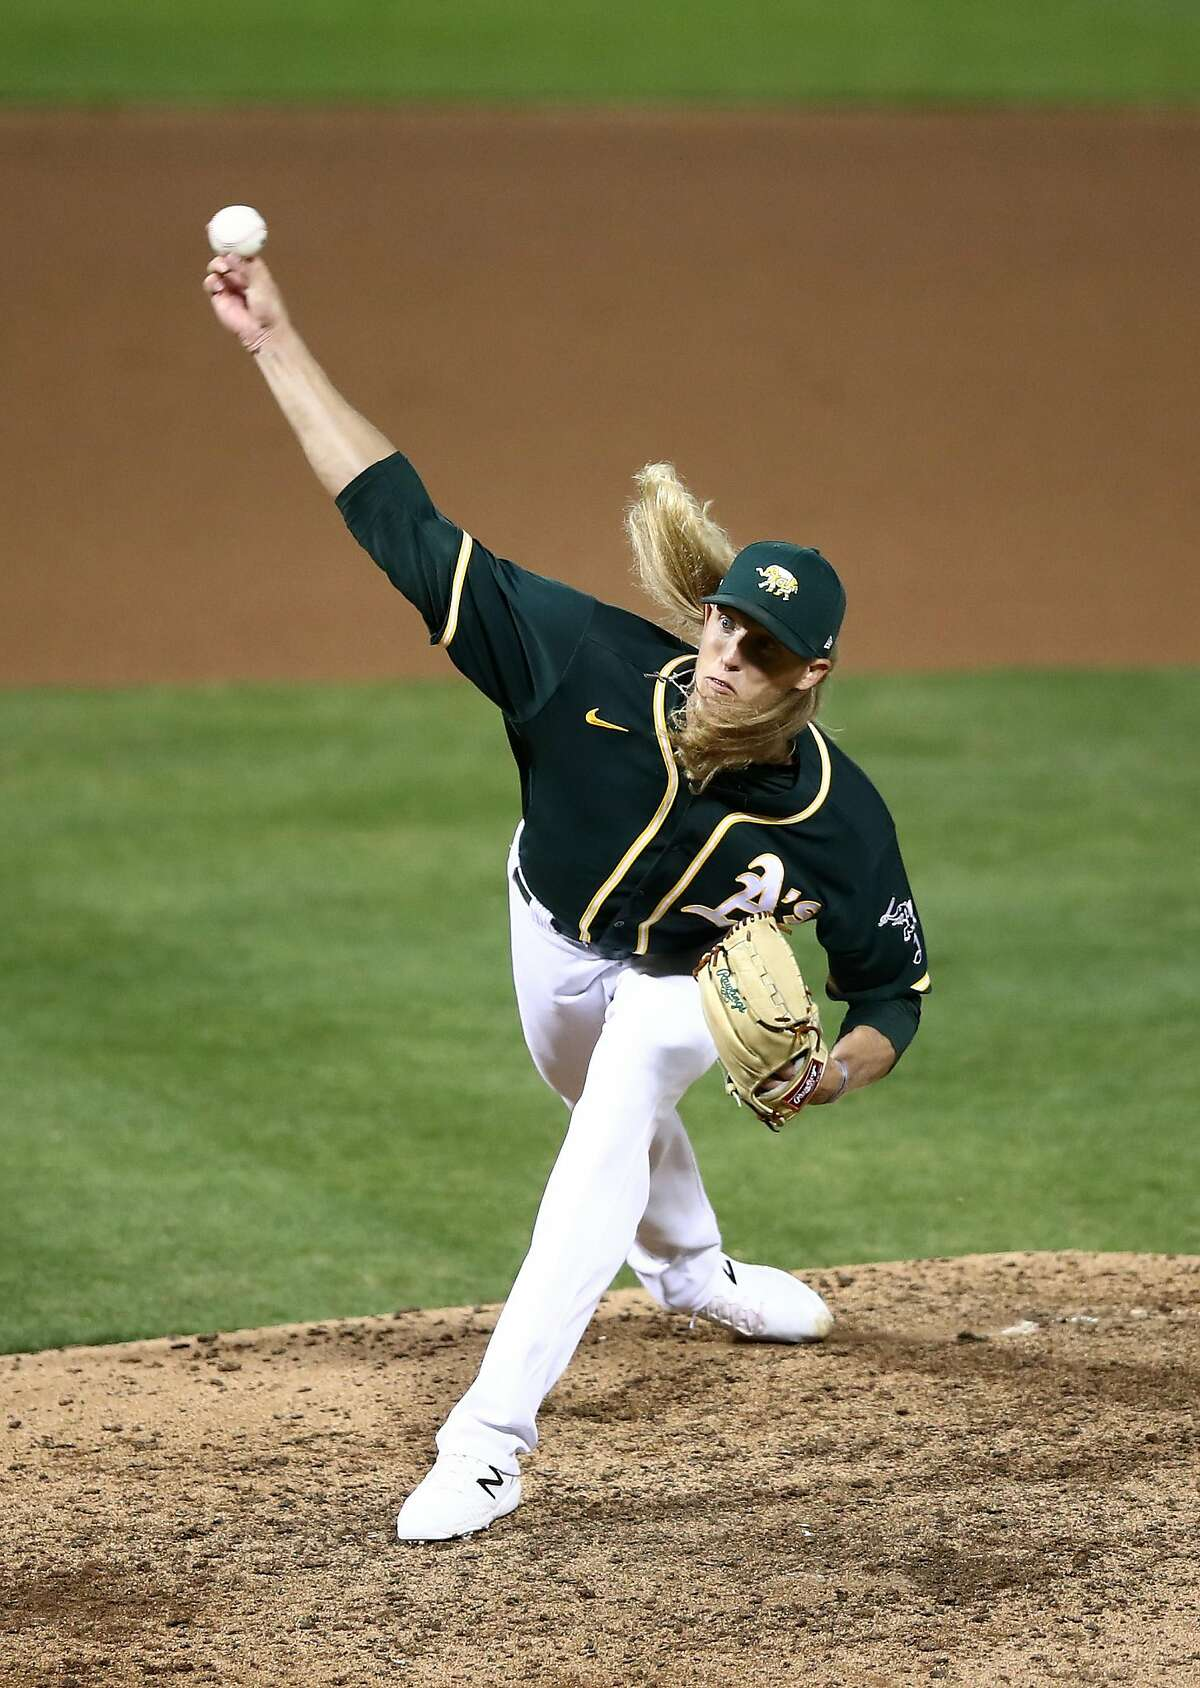 OAKLAND, CALIFORNIA - JULY 20: Jordan Weems #70 pitches against the San Francisco Giants in the seventh inning during their exhibition game at Oakland-Alameda County Coliseum on July 20, 2020 in Oakland, California. (Photo by Ezra Shaw/Getty Images)